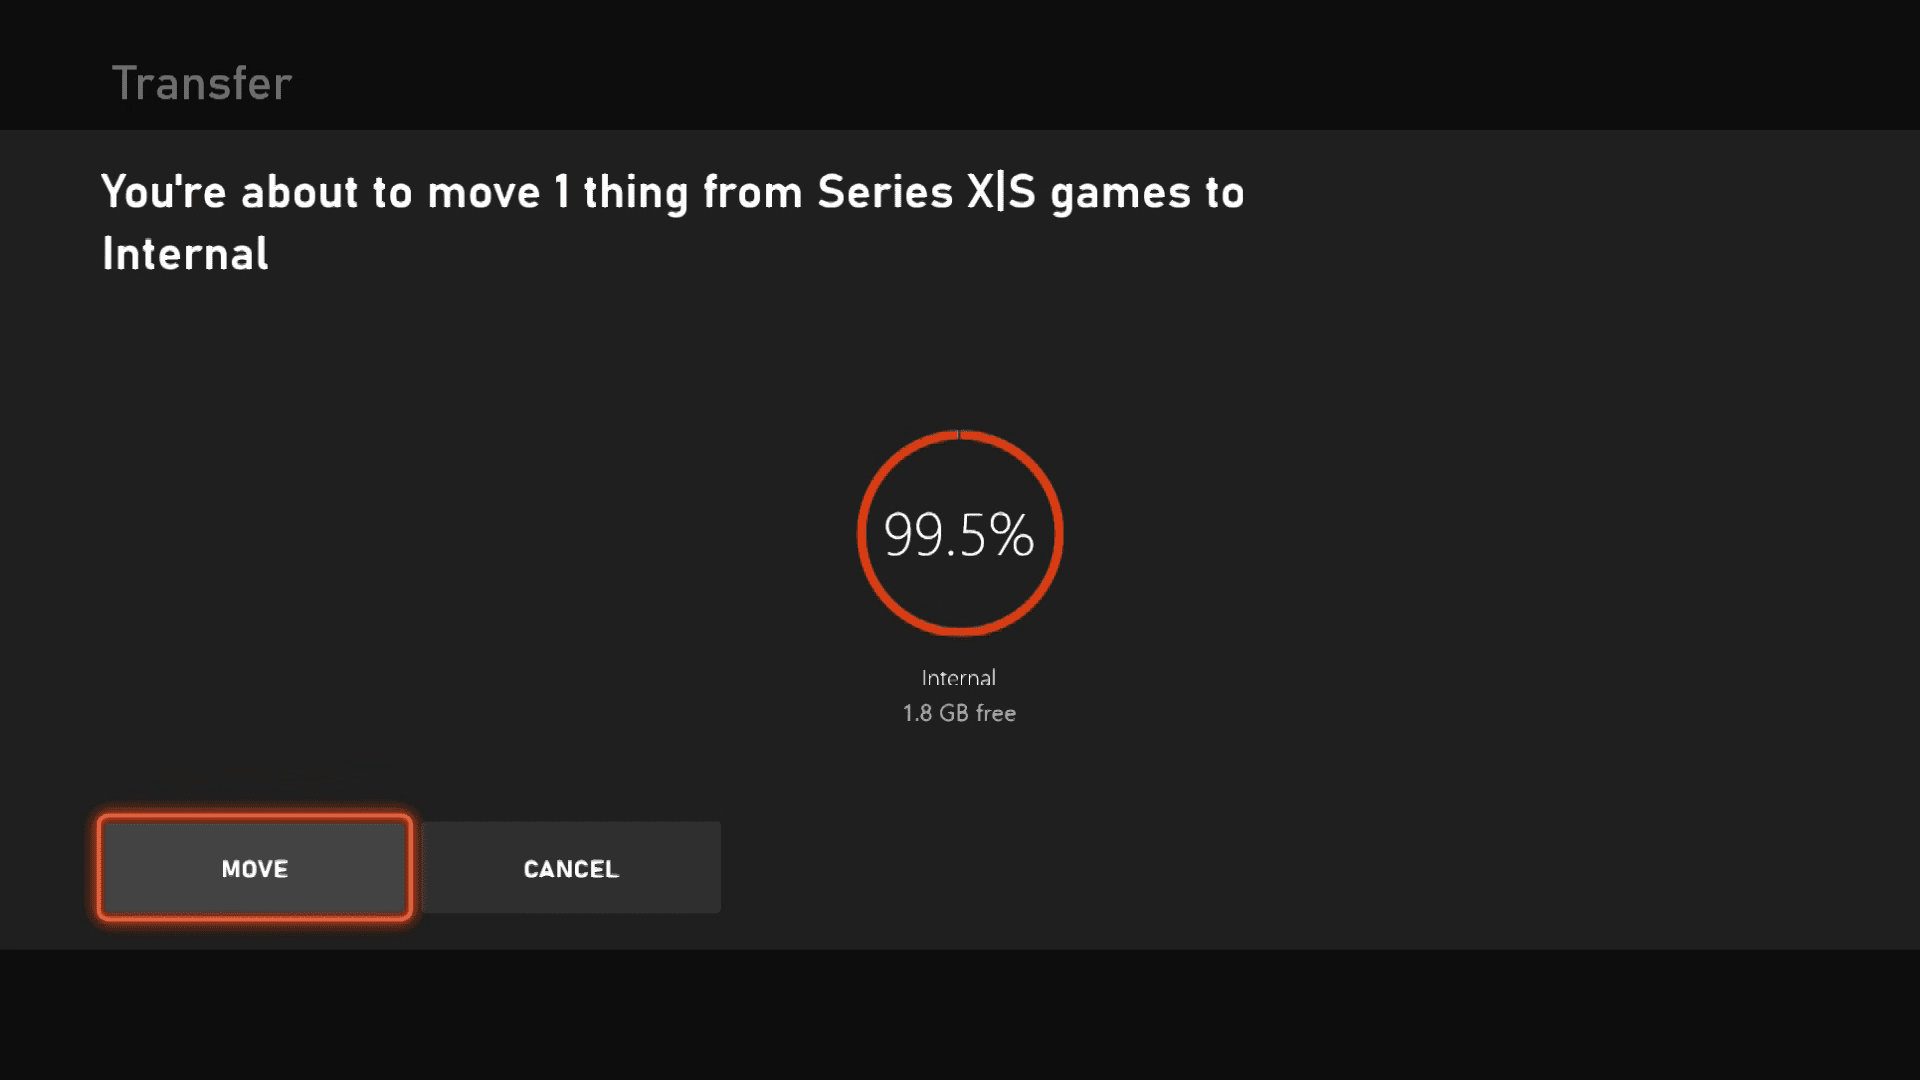 Moving games on Xbox Series X|S.